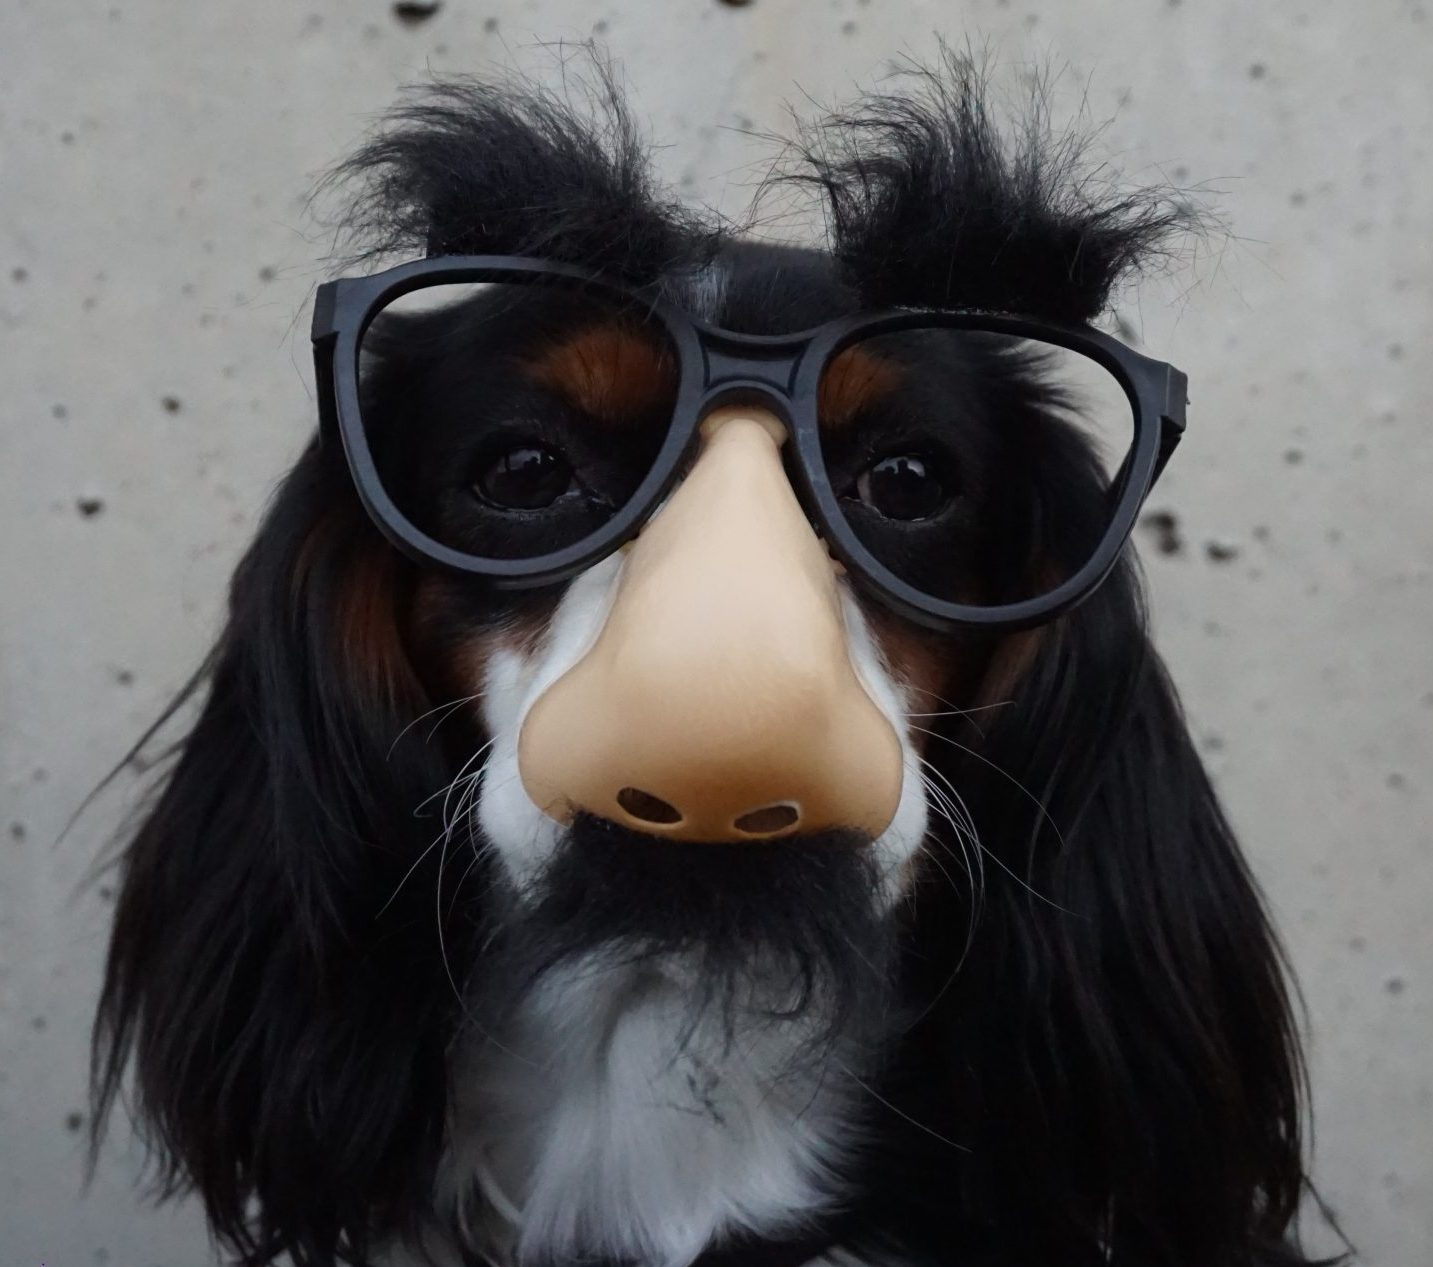 dog wearing fake nose and glasses